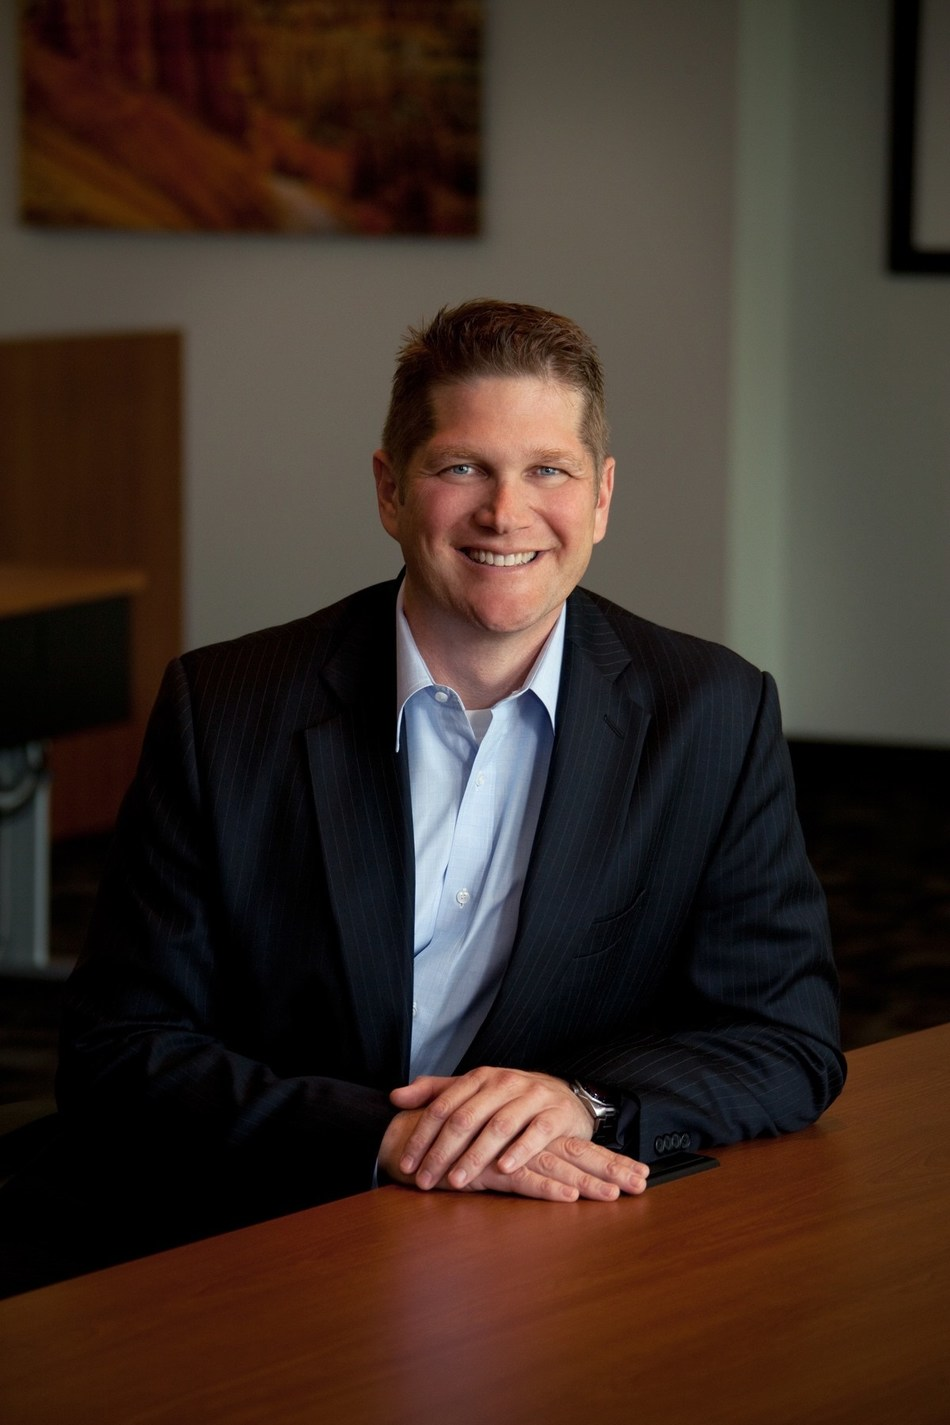 Instructure CEO Steve Daly